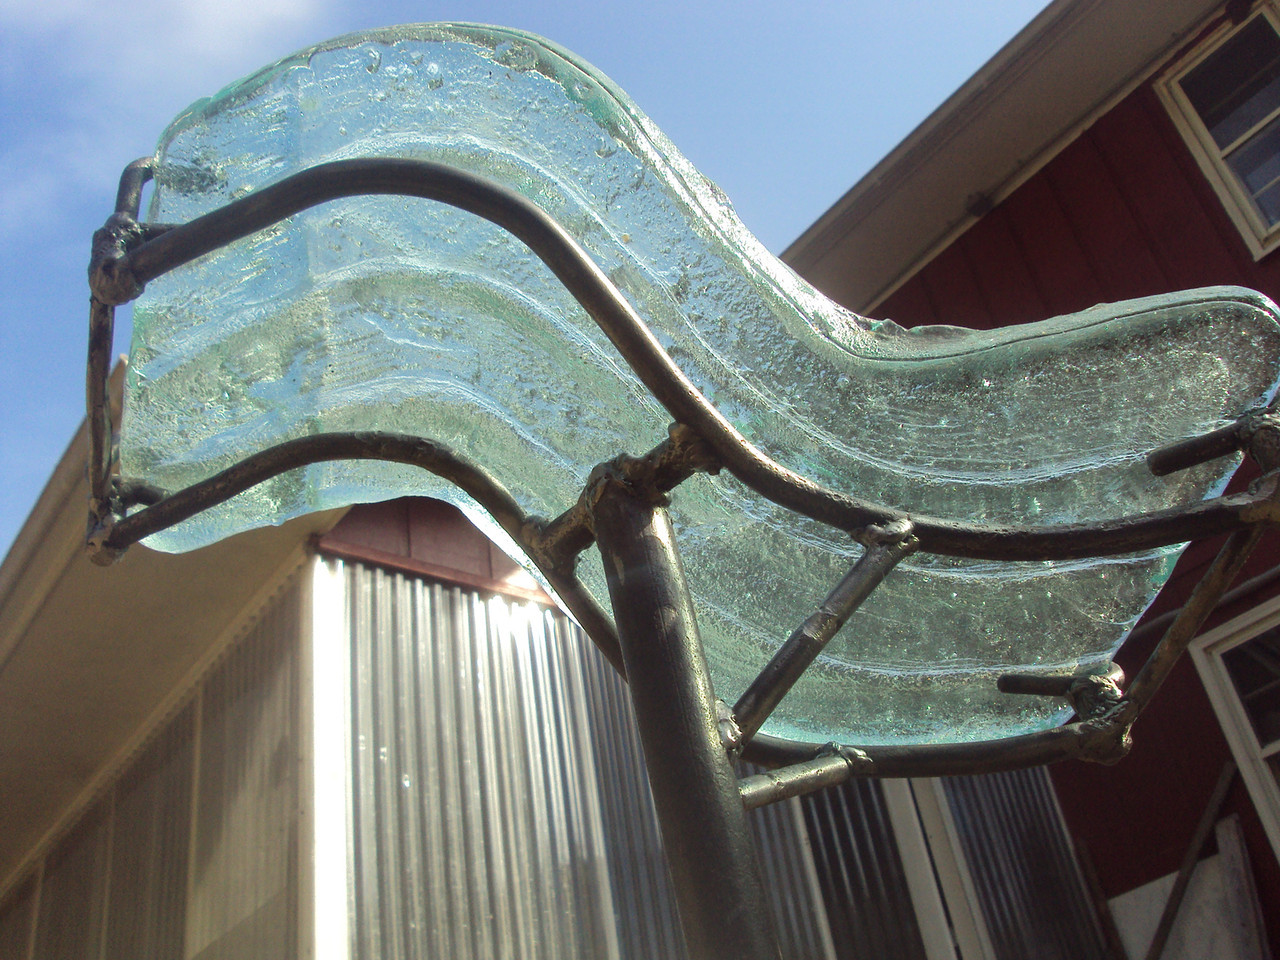 sculpture-glass-bronze.jpg